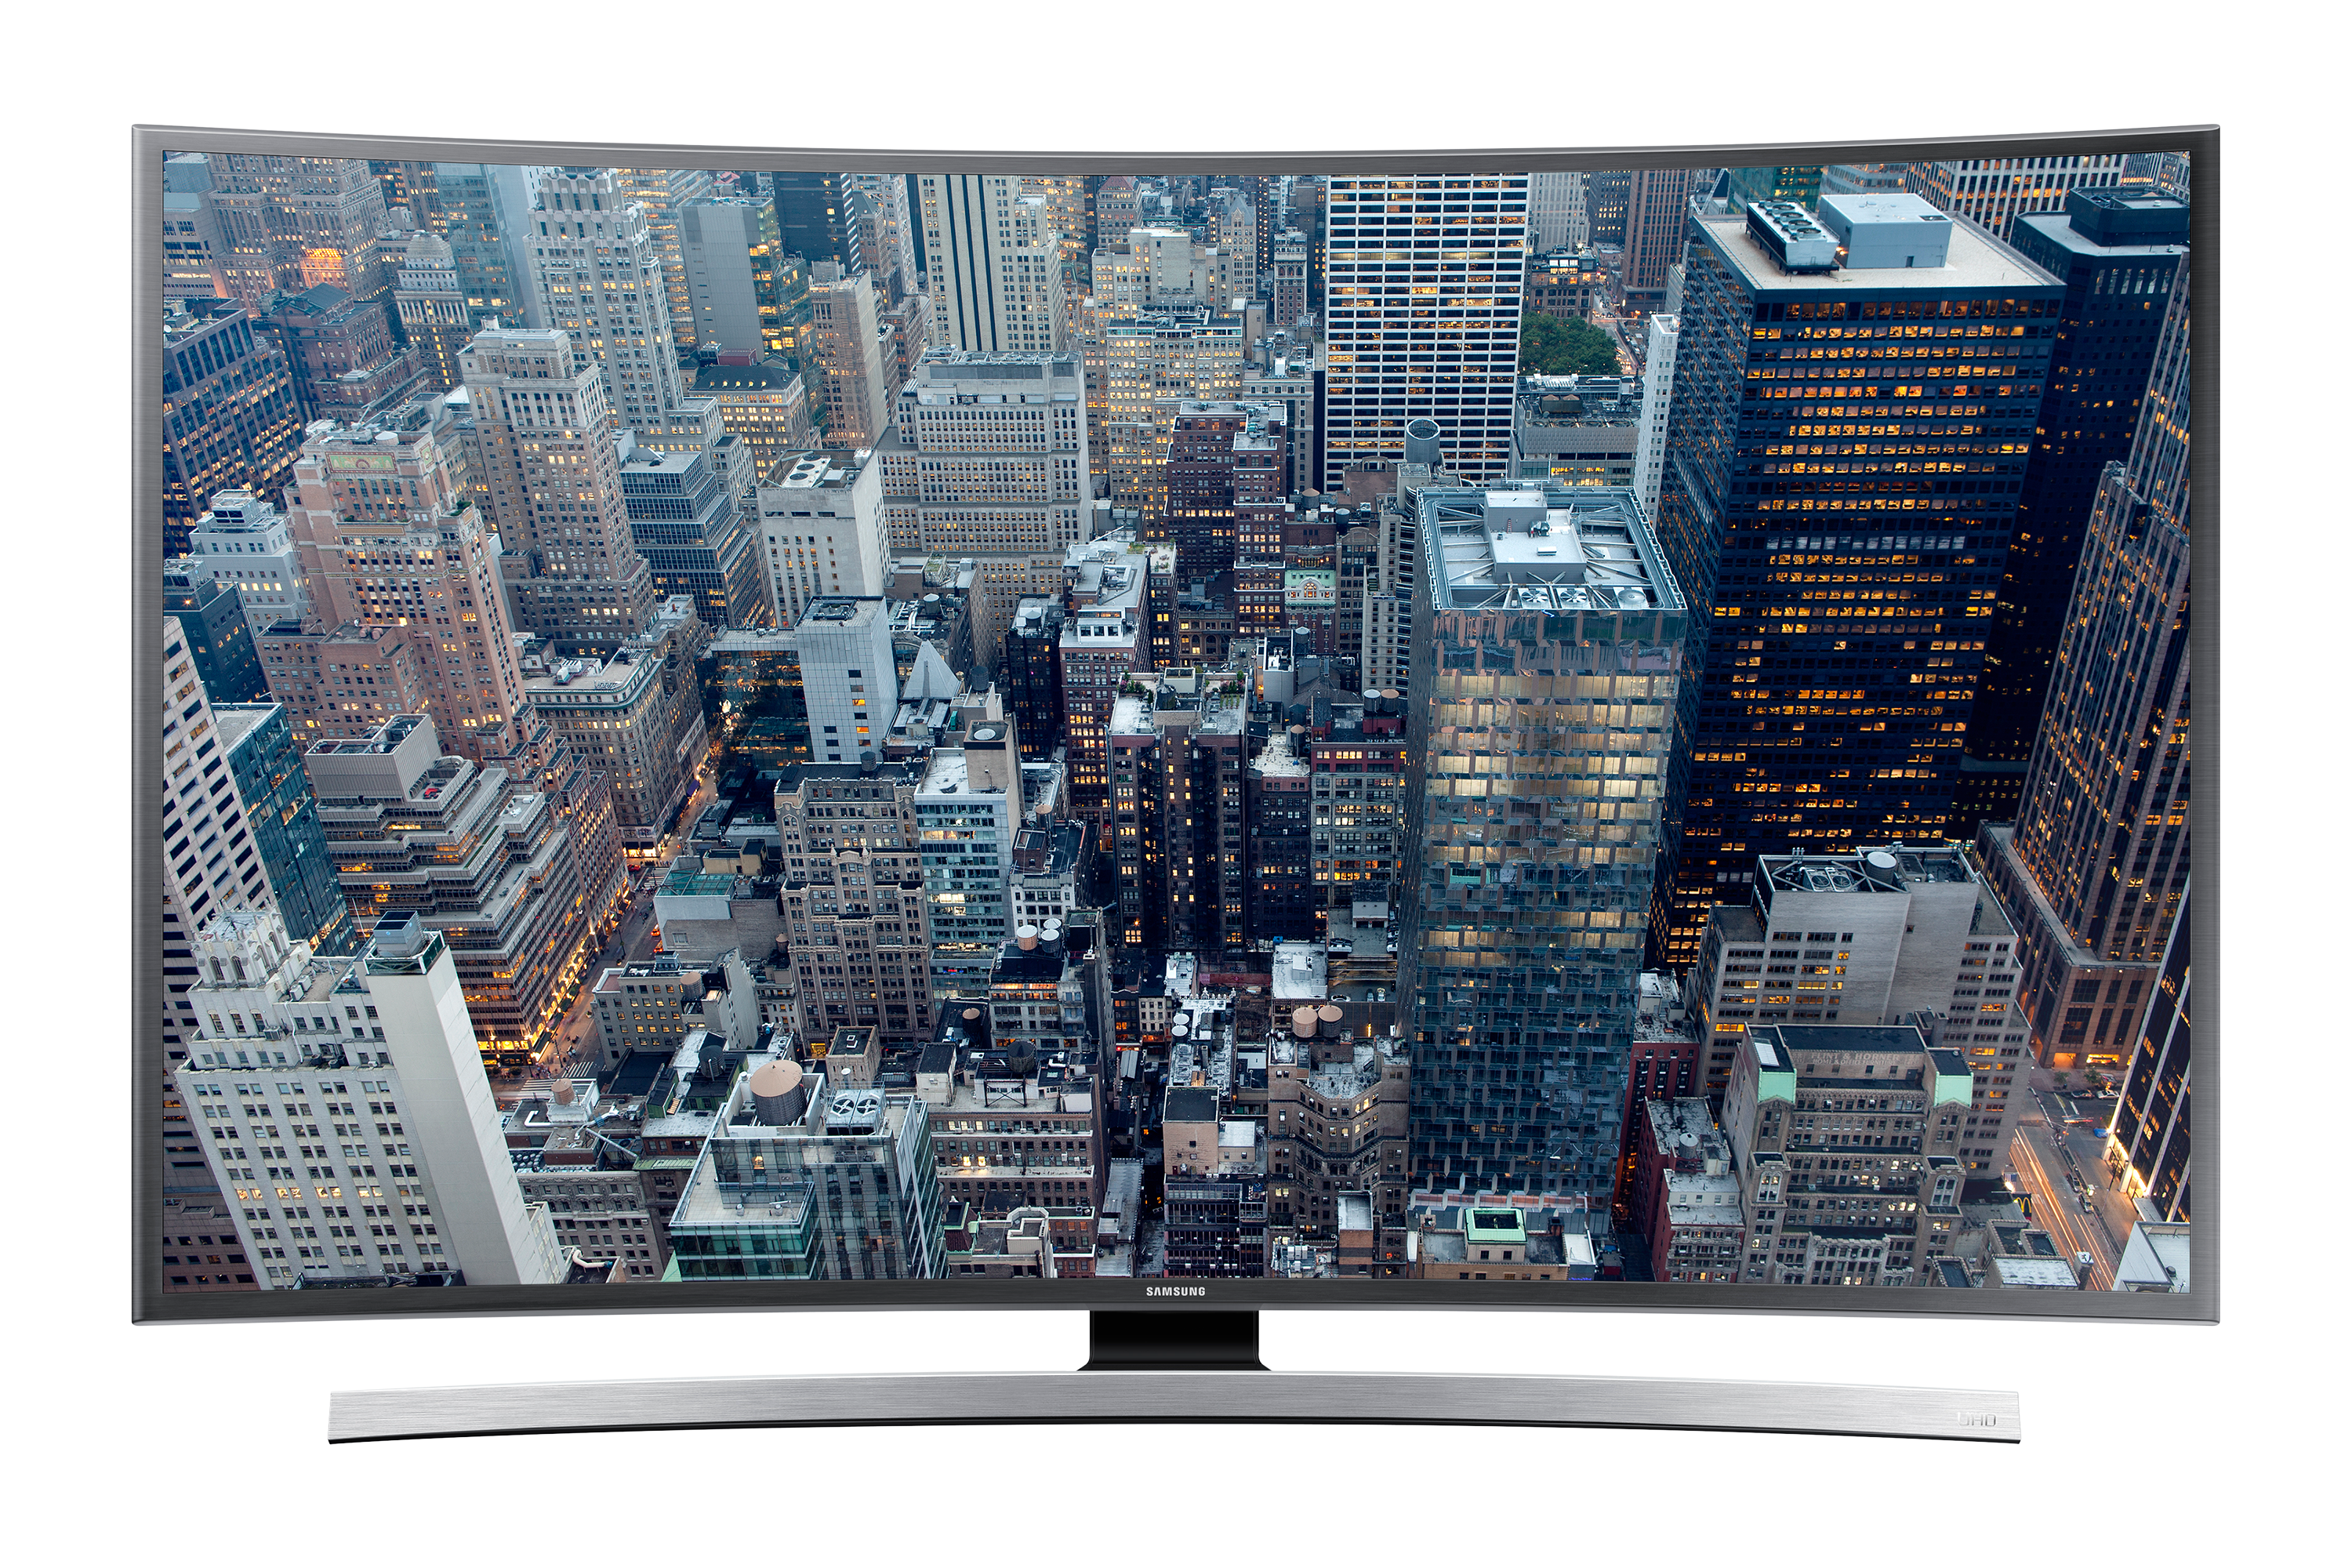 Series 6 65 inch JU6600 4K UHD LED TV*